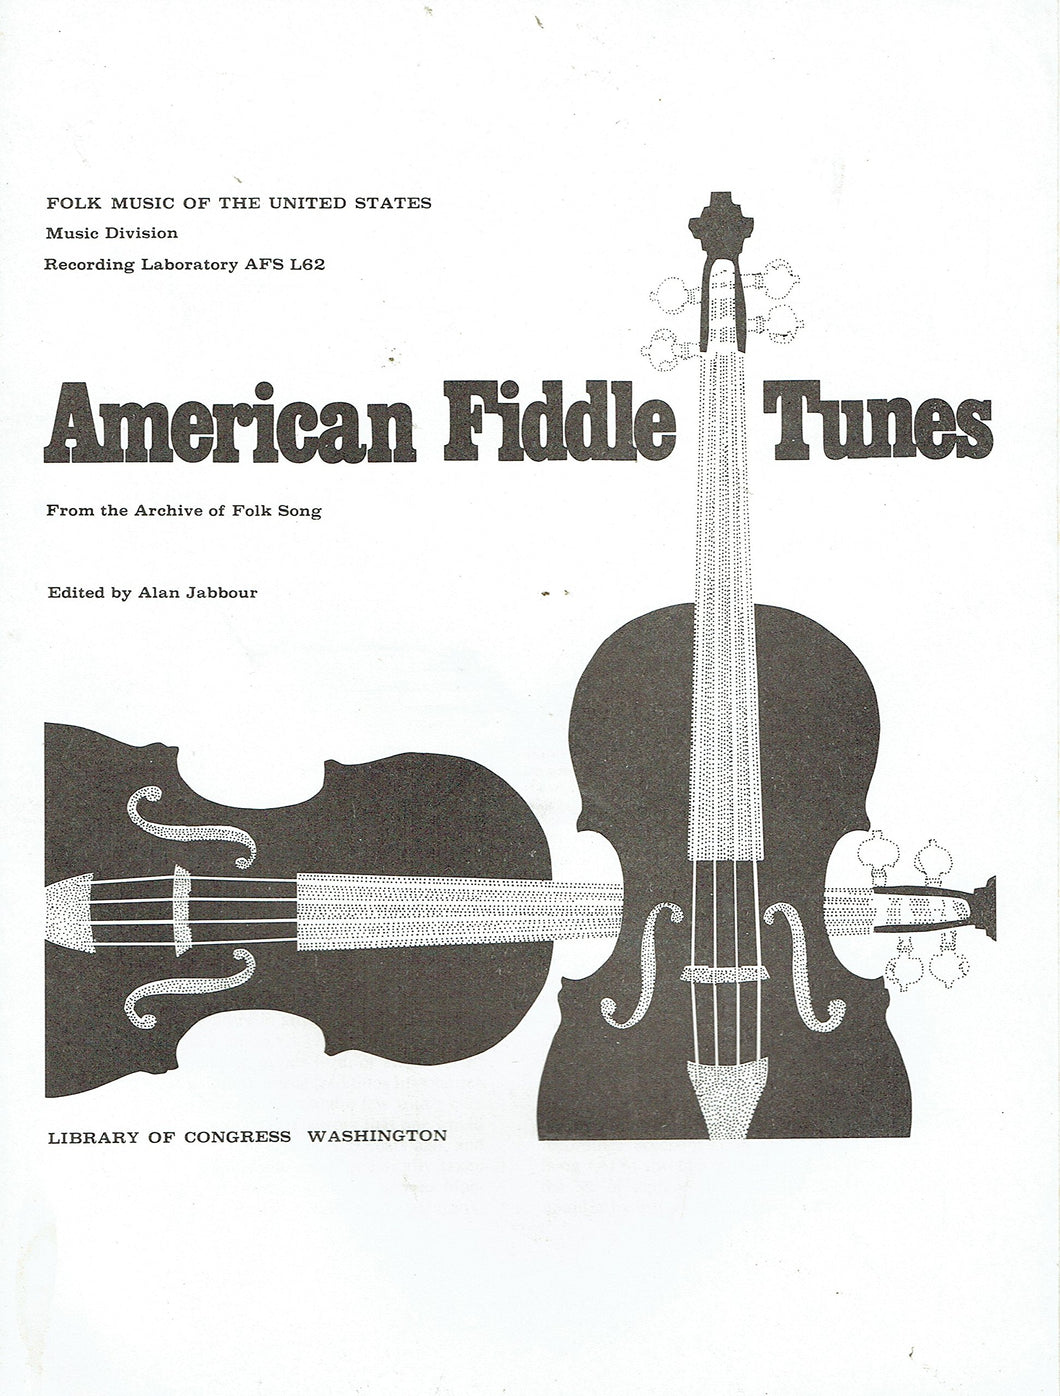 American Fiddle Tunes from the Archive of Folk Song: Folk Music of the United States, Music Division, Music Laboratory AFS L62